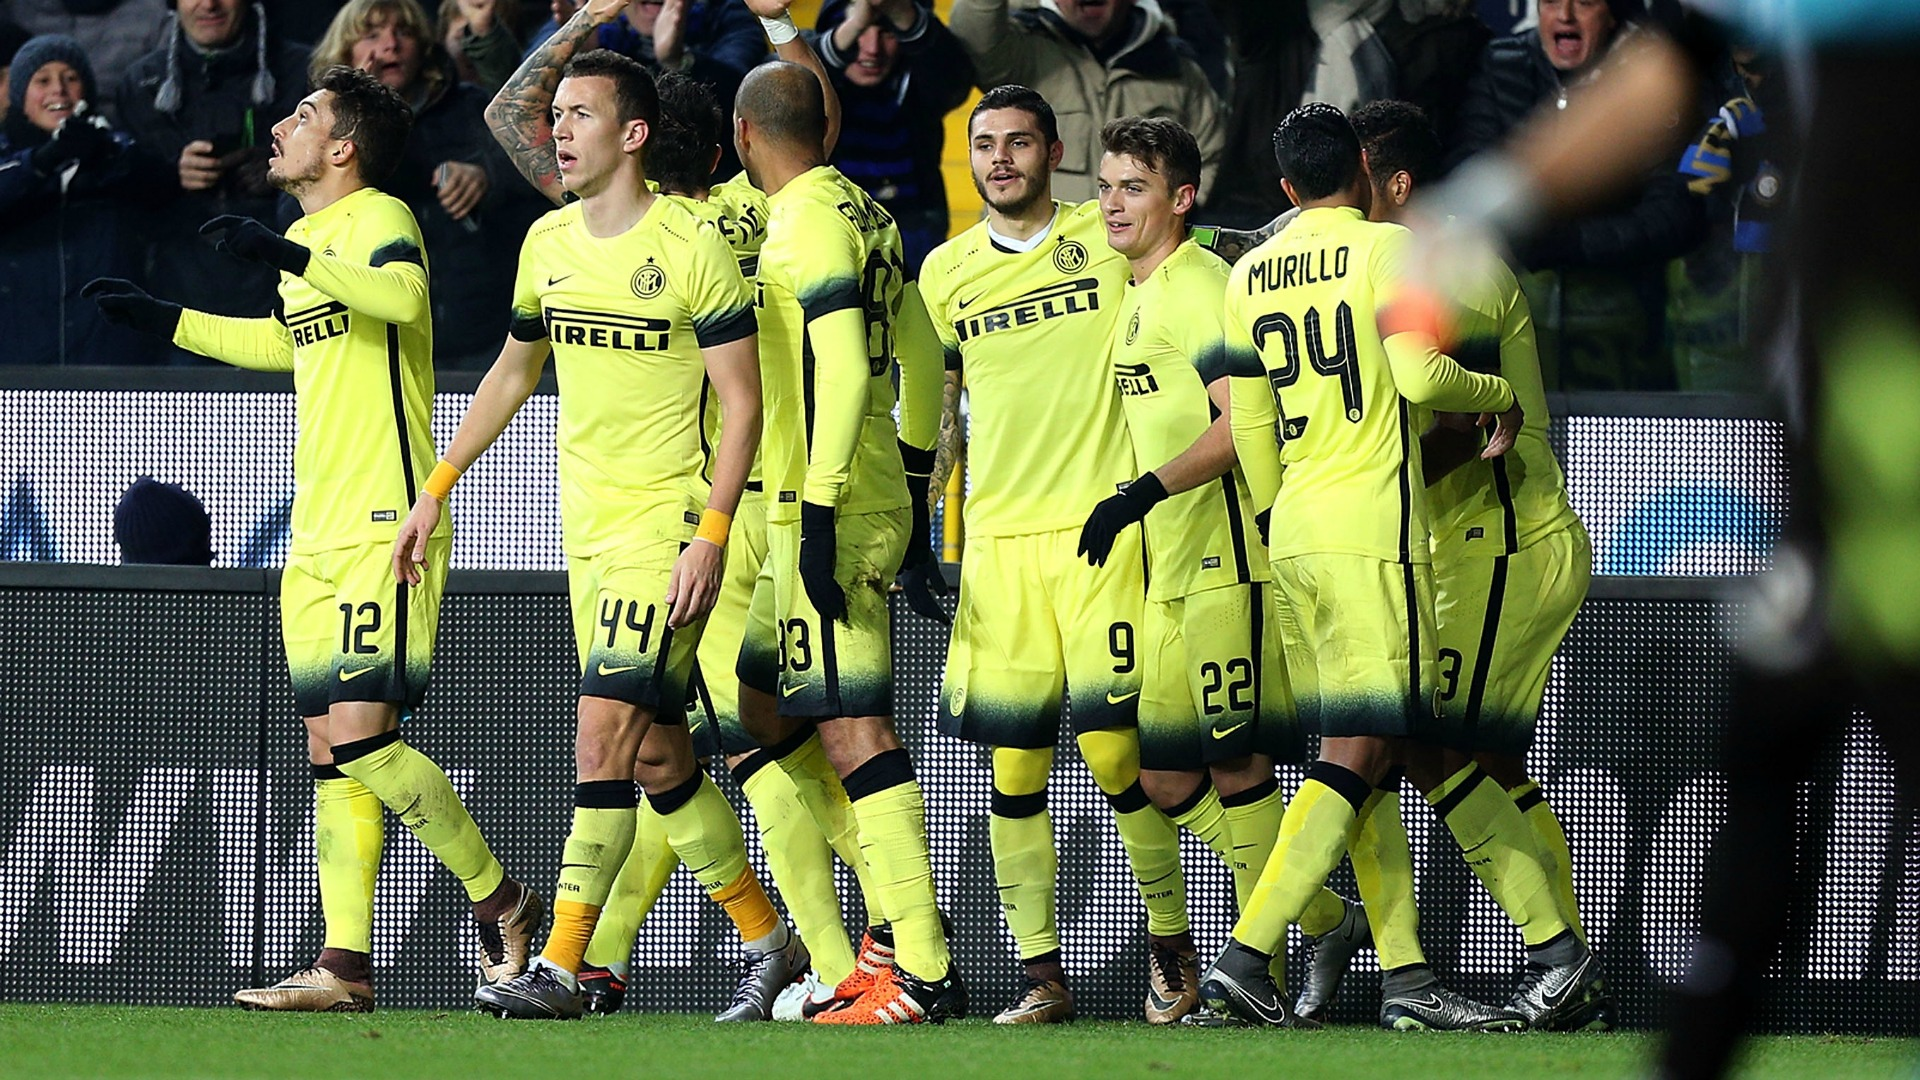 Video: Udinese vs Inter Milan